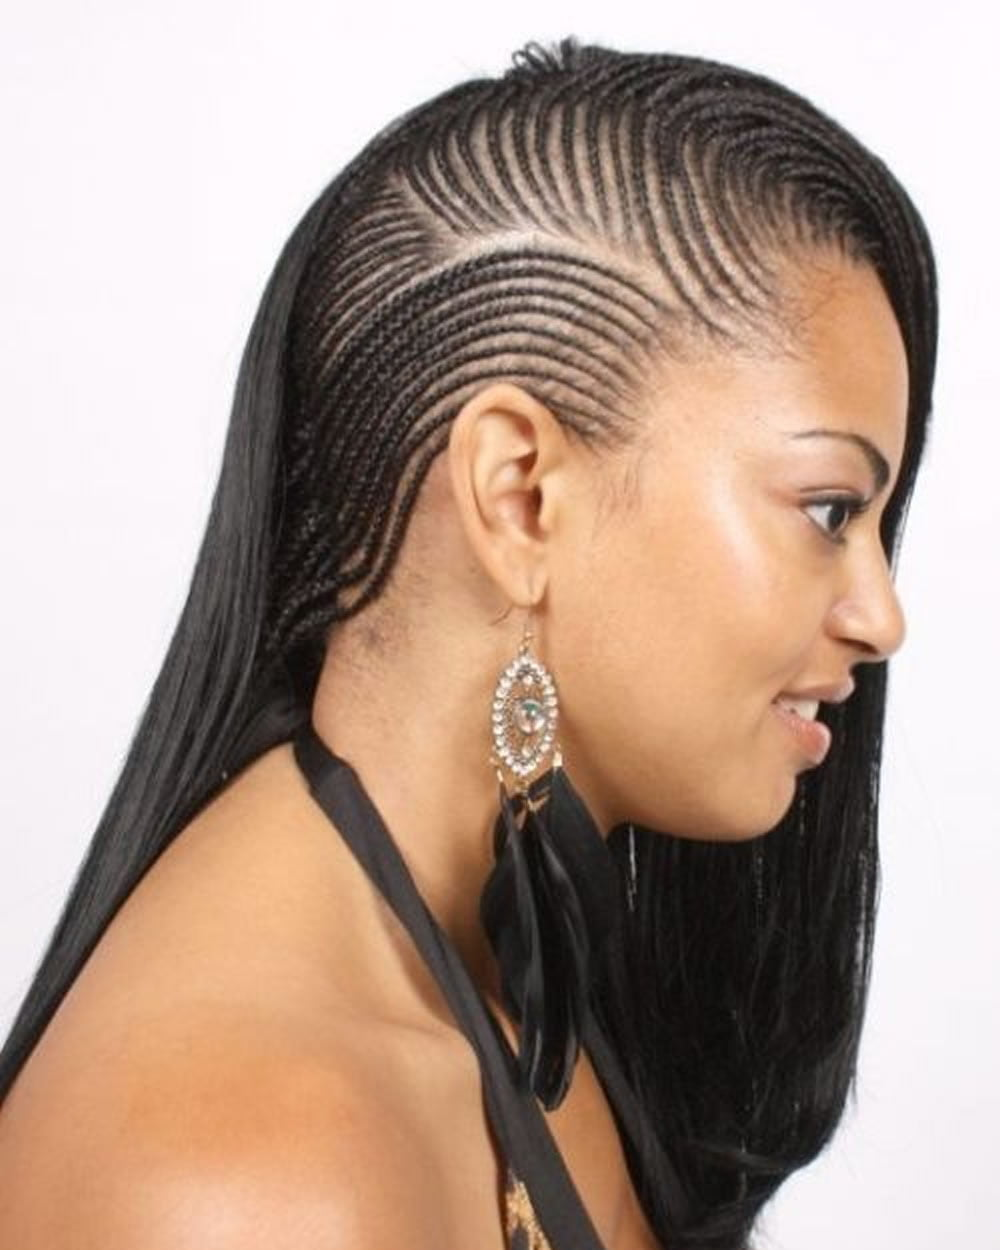 Cornrow Hairstyles for Black Women 20182019  Page 6